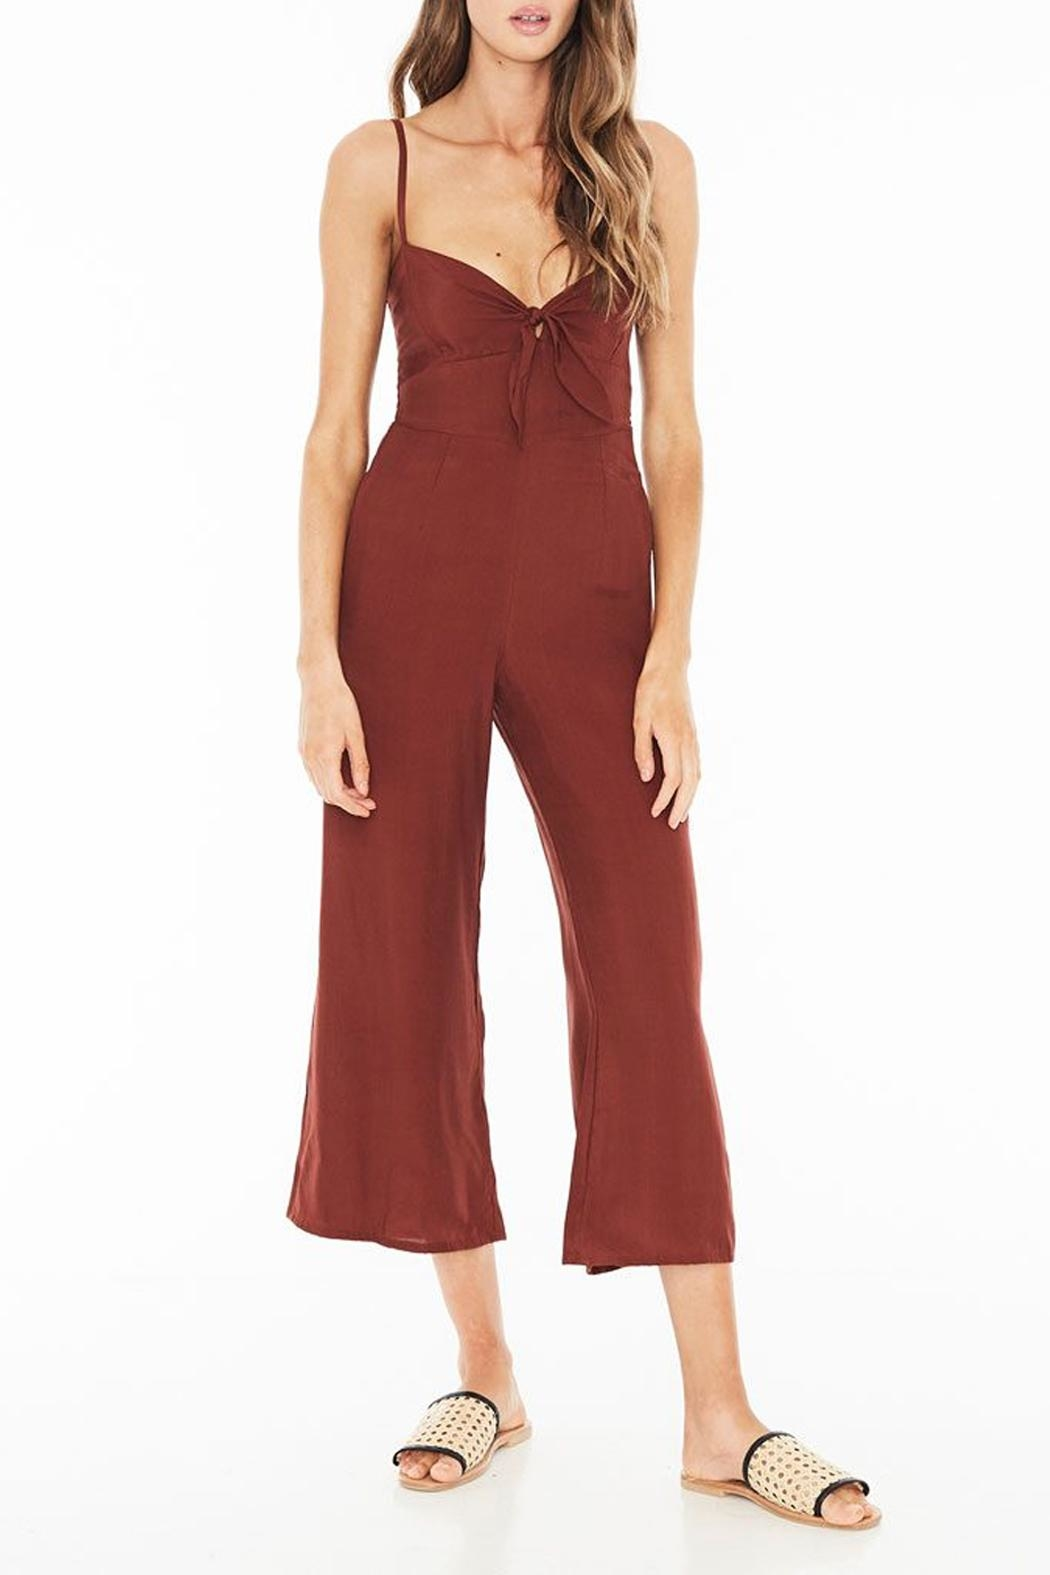 Faithfull The Brand Presley Jumpsuit - Main Image